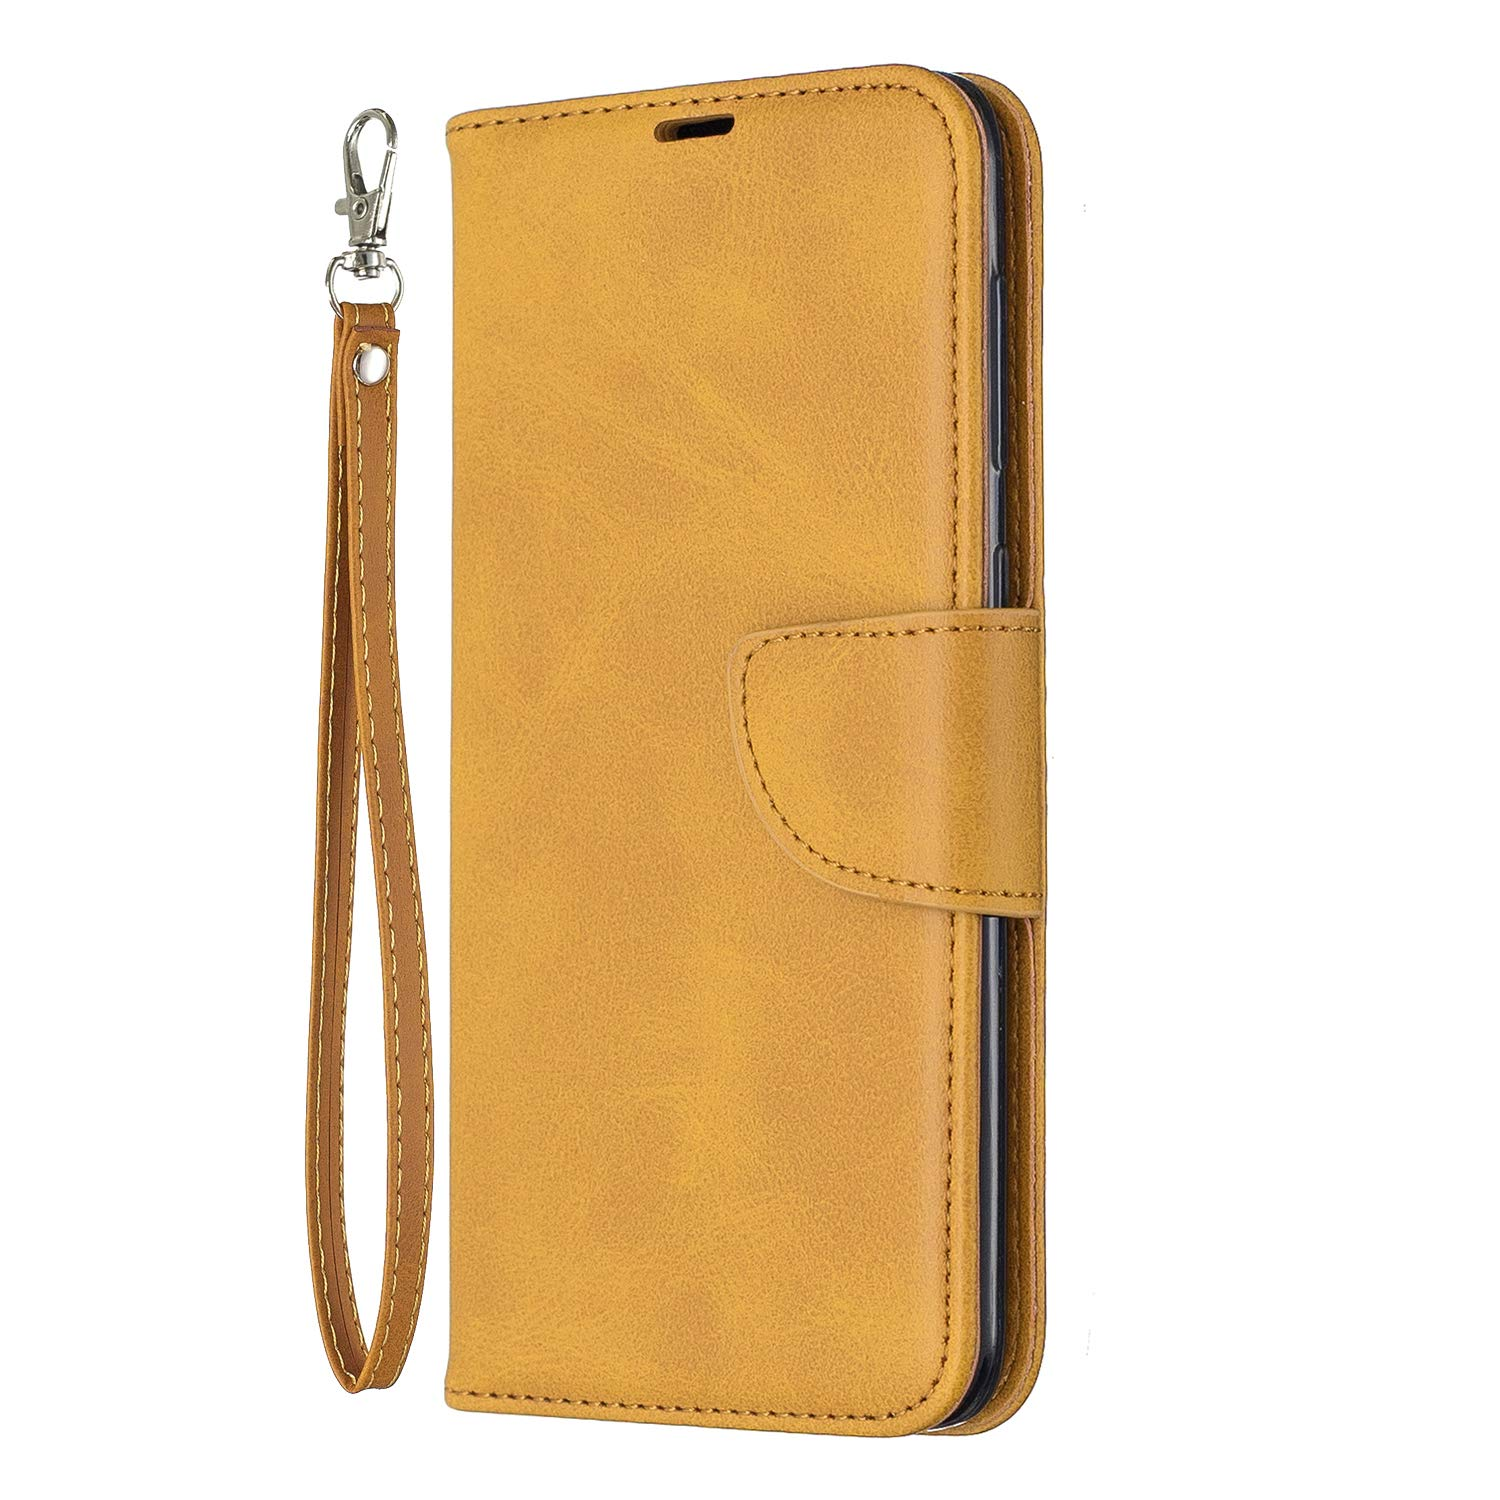 Huphant Compatible for Schutzh/ülle Samsung Galaxy A50 H/ülle,Brieftasche Klapph/ülle Embossed Kartenf/ächer Solid Color Gesch/äft Wallet Flip H/ülle for Samsung Galaxy A50 Handyh/ülle Brown